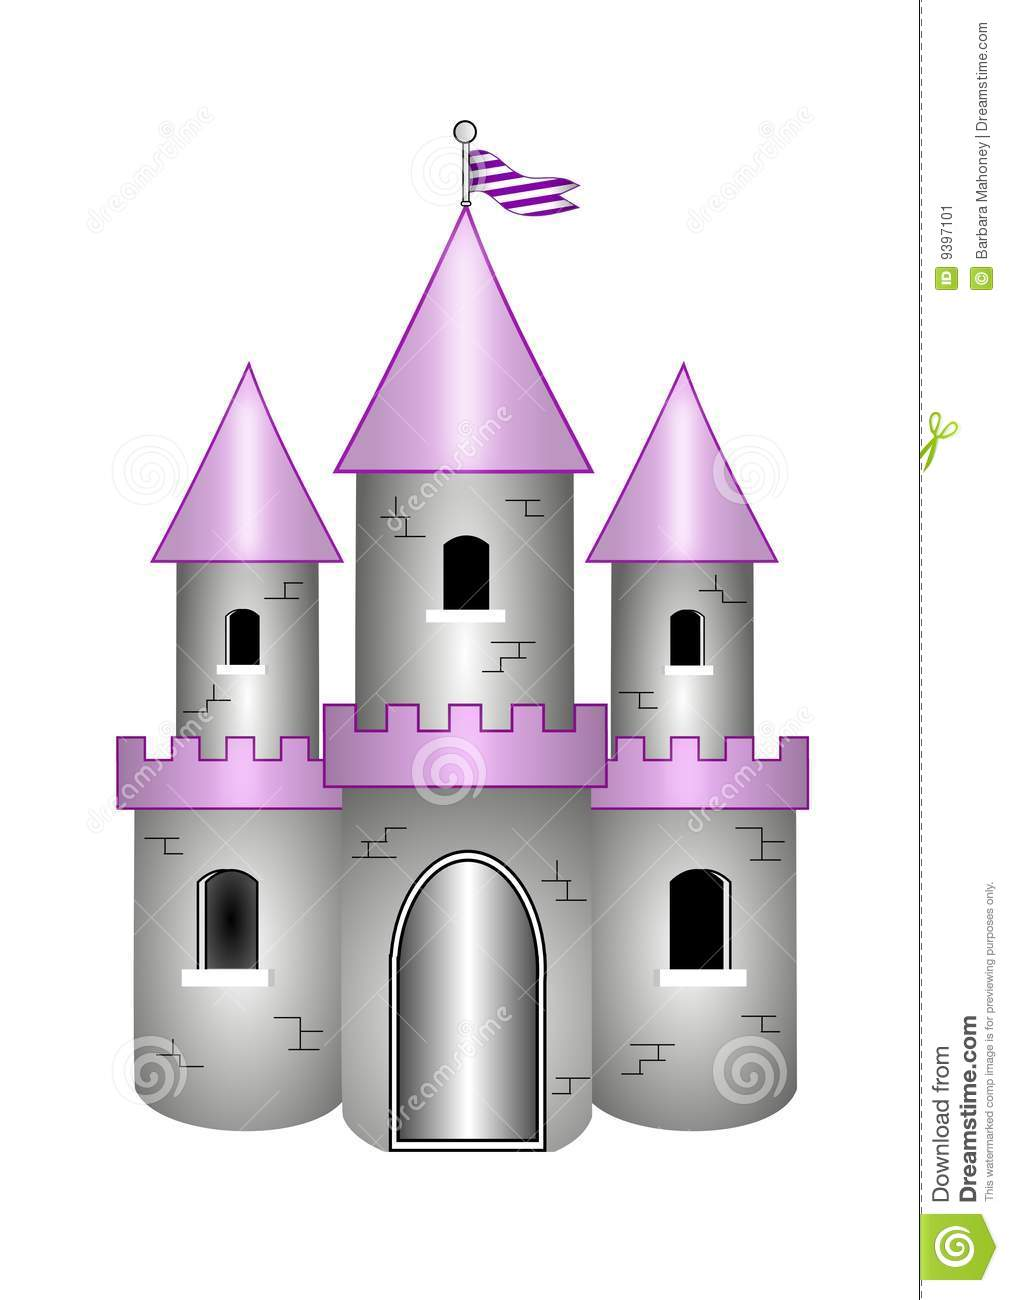 Cartoon Castle Stock Image - Image: 9397101